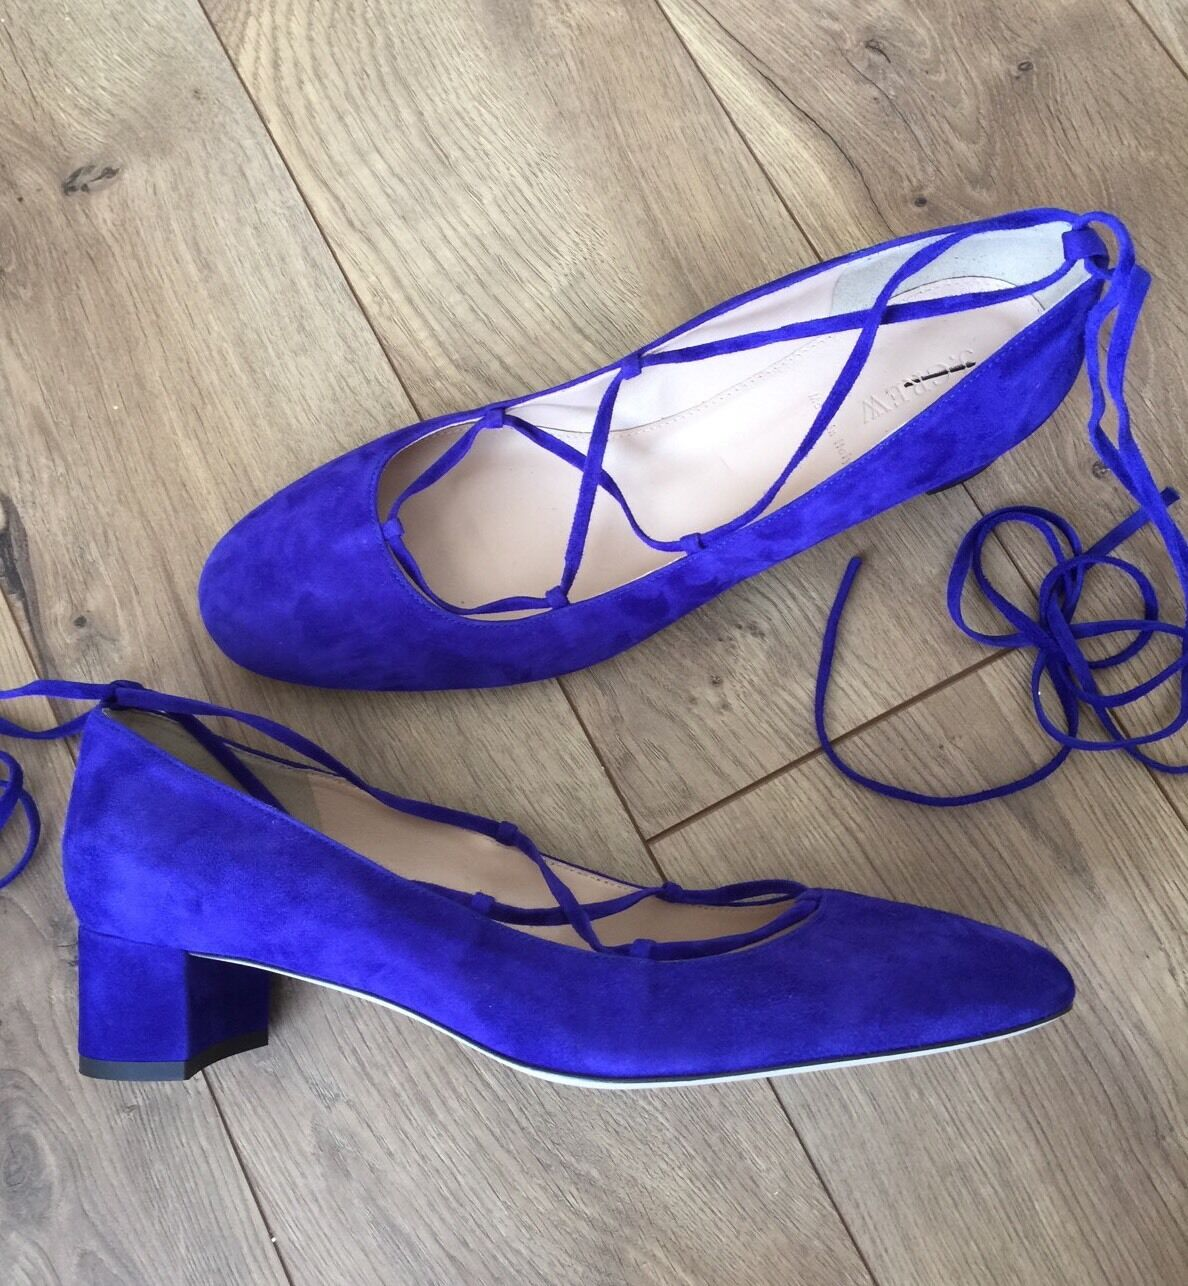 JCrew  218 Lace-Up Heels in Suede 12 Brilliant Purple f4867 Block Shoes